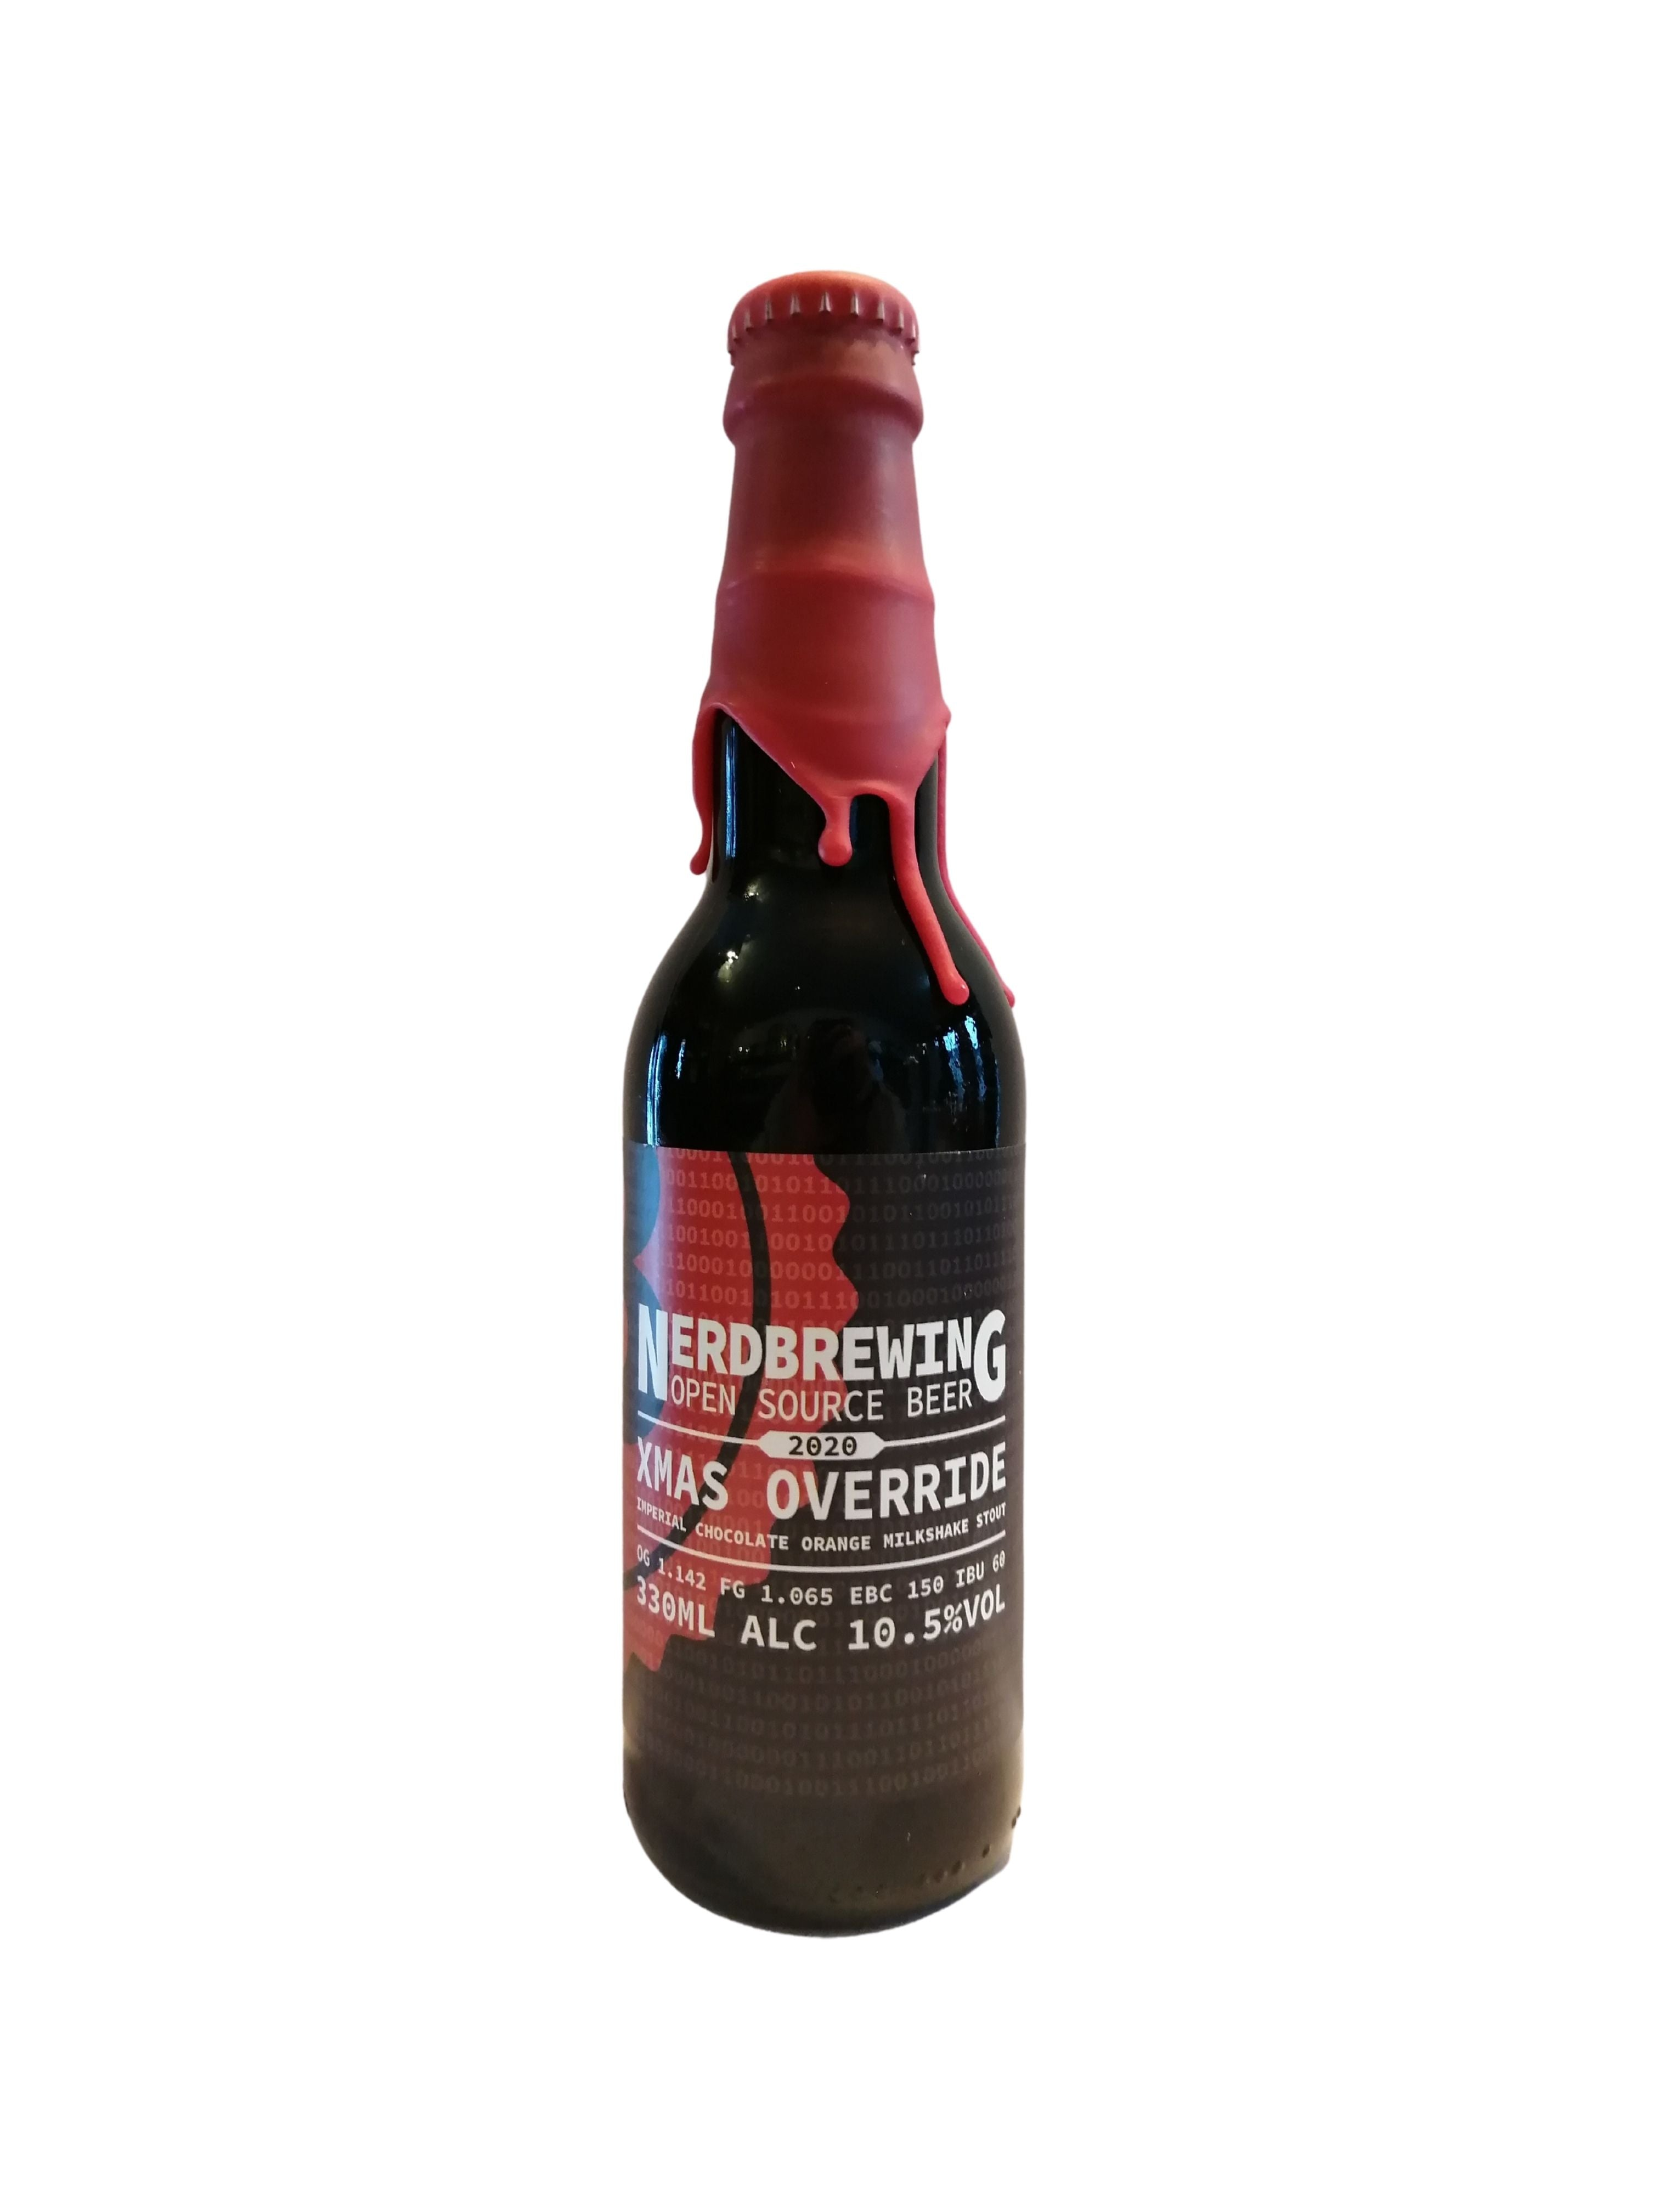 Nerd Brewing - Xmas Override Imperial Chocolate Orange Milkshake Stout (2020) - Imperial Stout - 10.5% (Brand New)